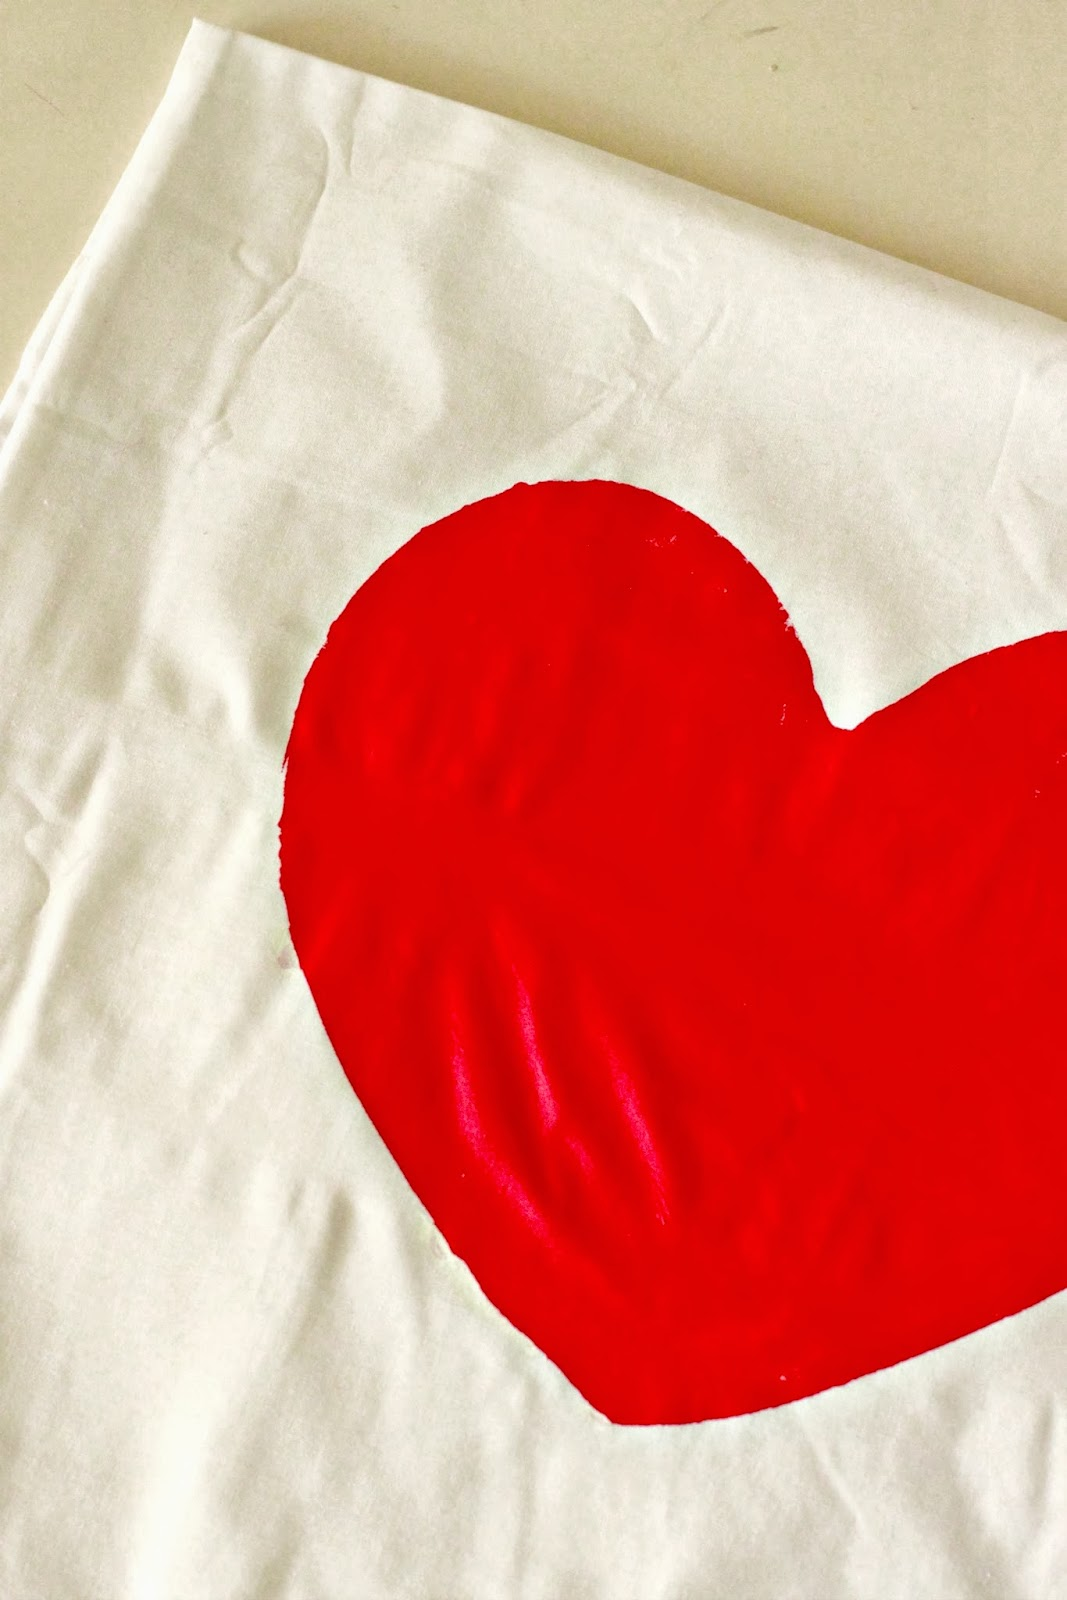 How To Make Removable Throw Pillow Covers With Velcro Closure : Larissa Another Day: Pillowcase Heart Envelope Throwpillow